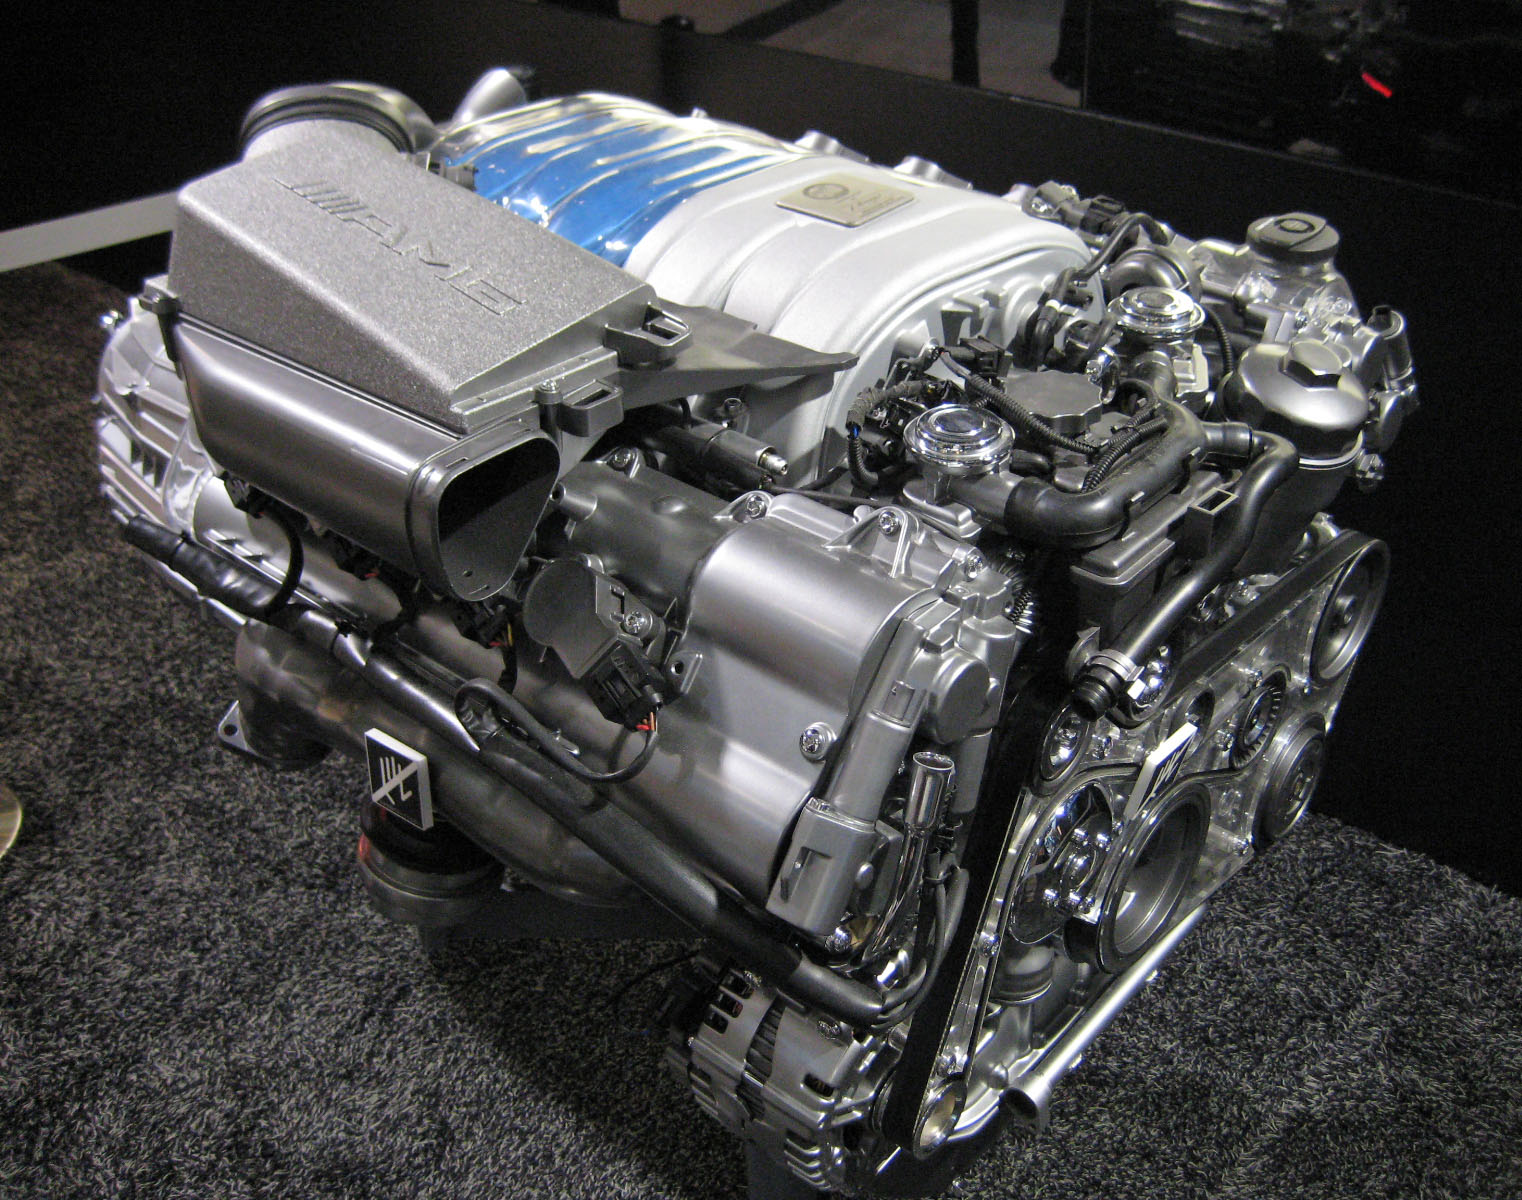 Mercedes Benz Engine Cars N Bikes Diagrams Is The To Much Hours Powerits All About Oilmercedes Partsmercedes Diagram